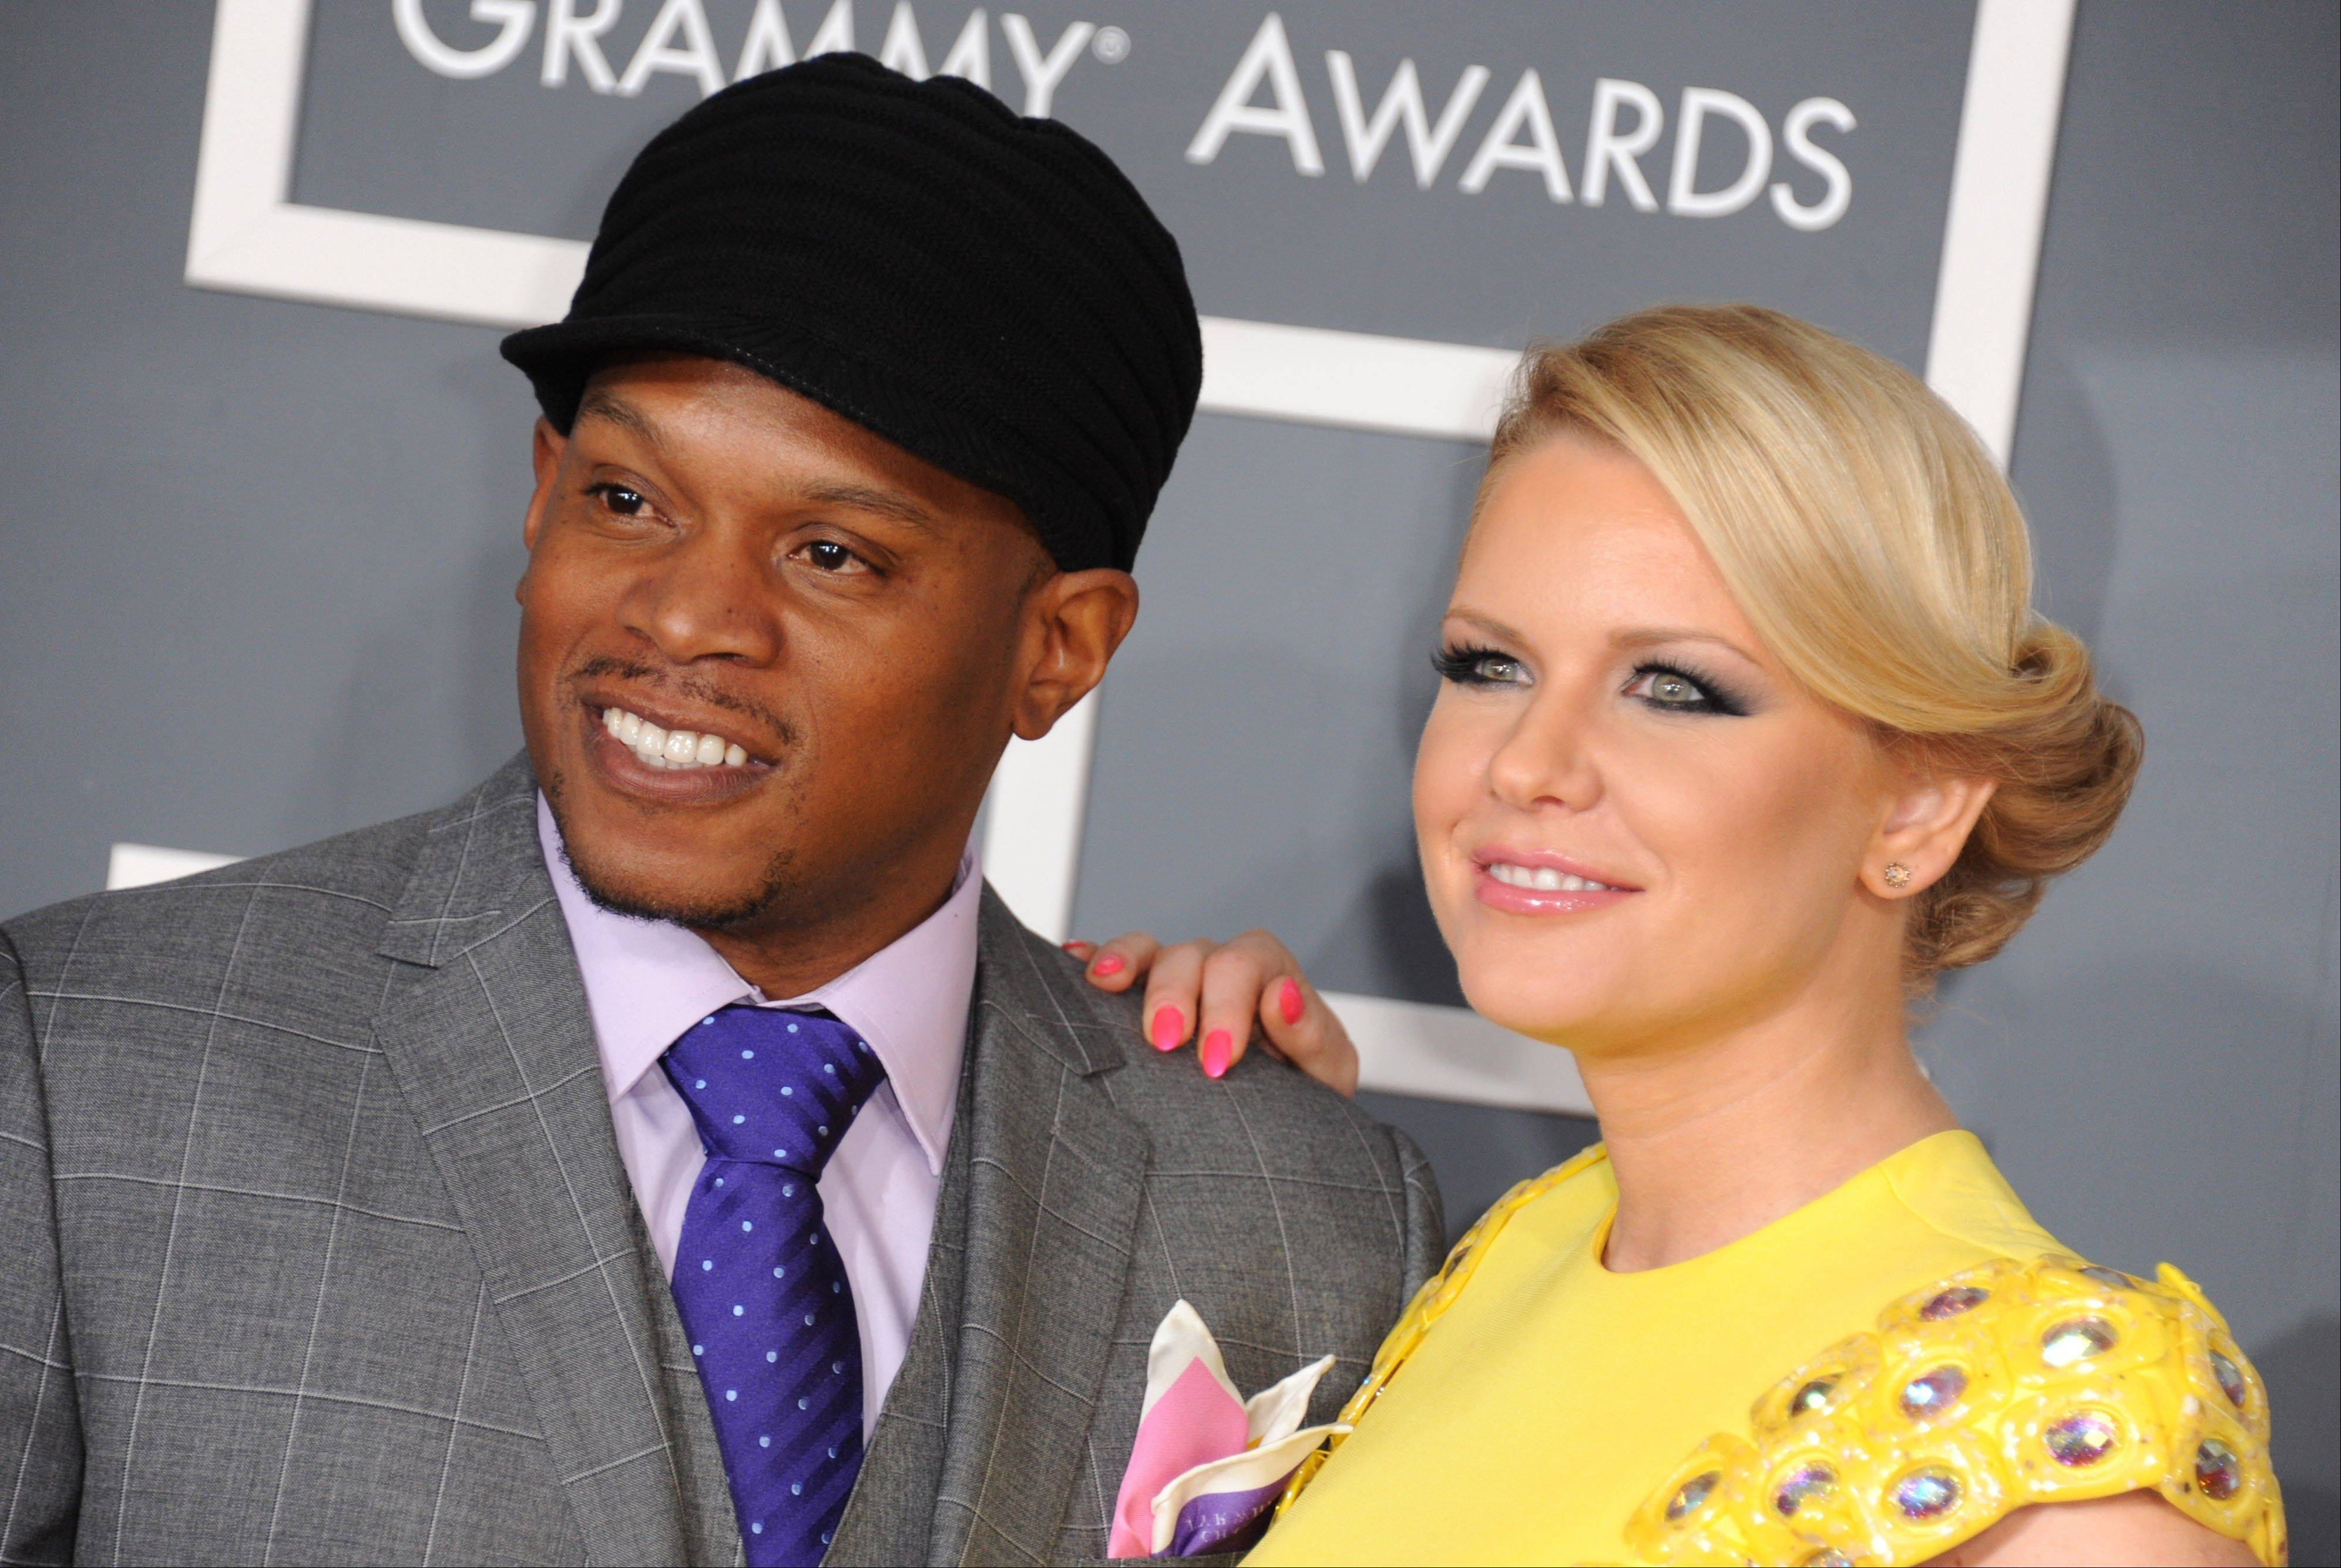 Sway, left, and Carrie Keagan arrive at the 55th annual Grammy Awards on Sunday, Feb. 10, 2013, in Los Angeles.